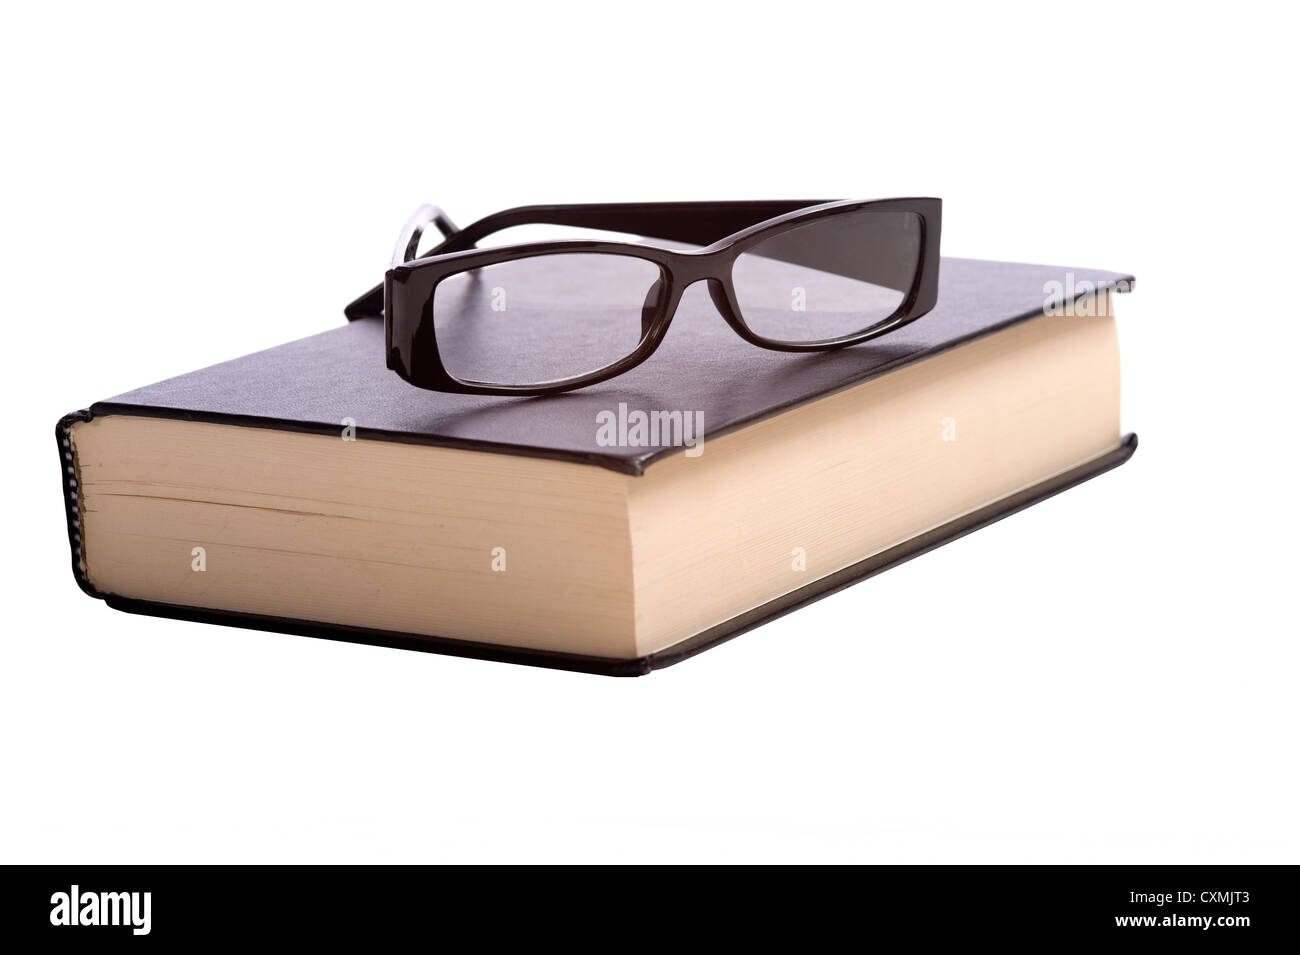 e1f968e5e2 A pair of fashionable reading glasses on top of a black book on a white  background